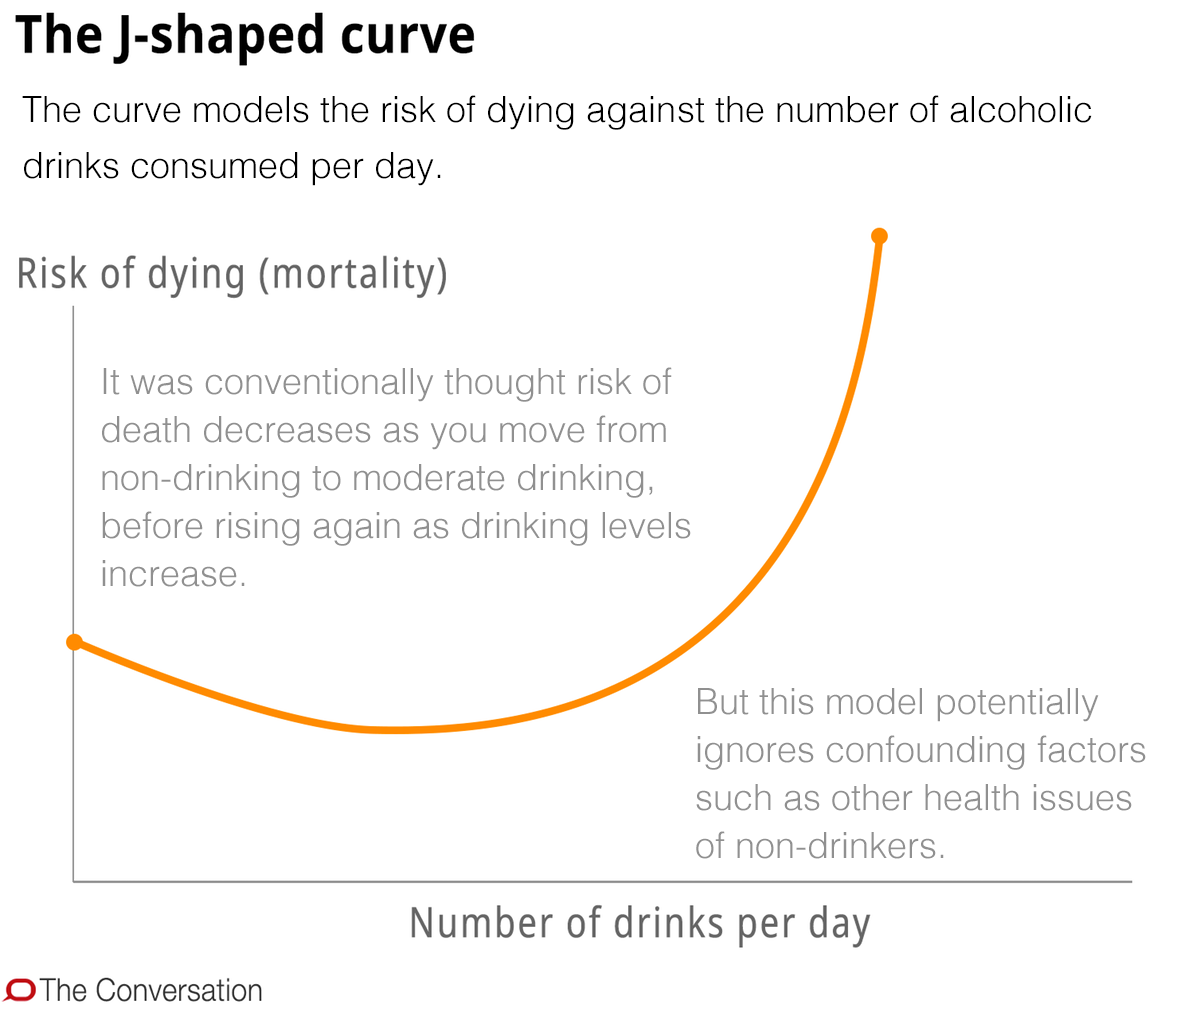 Health check: is moderate drinking good for me?